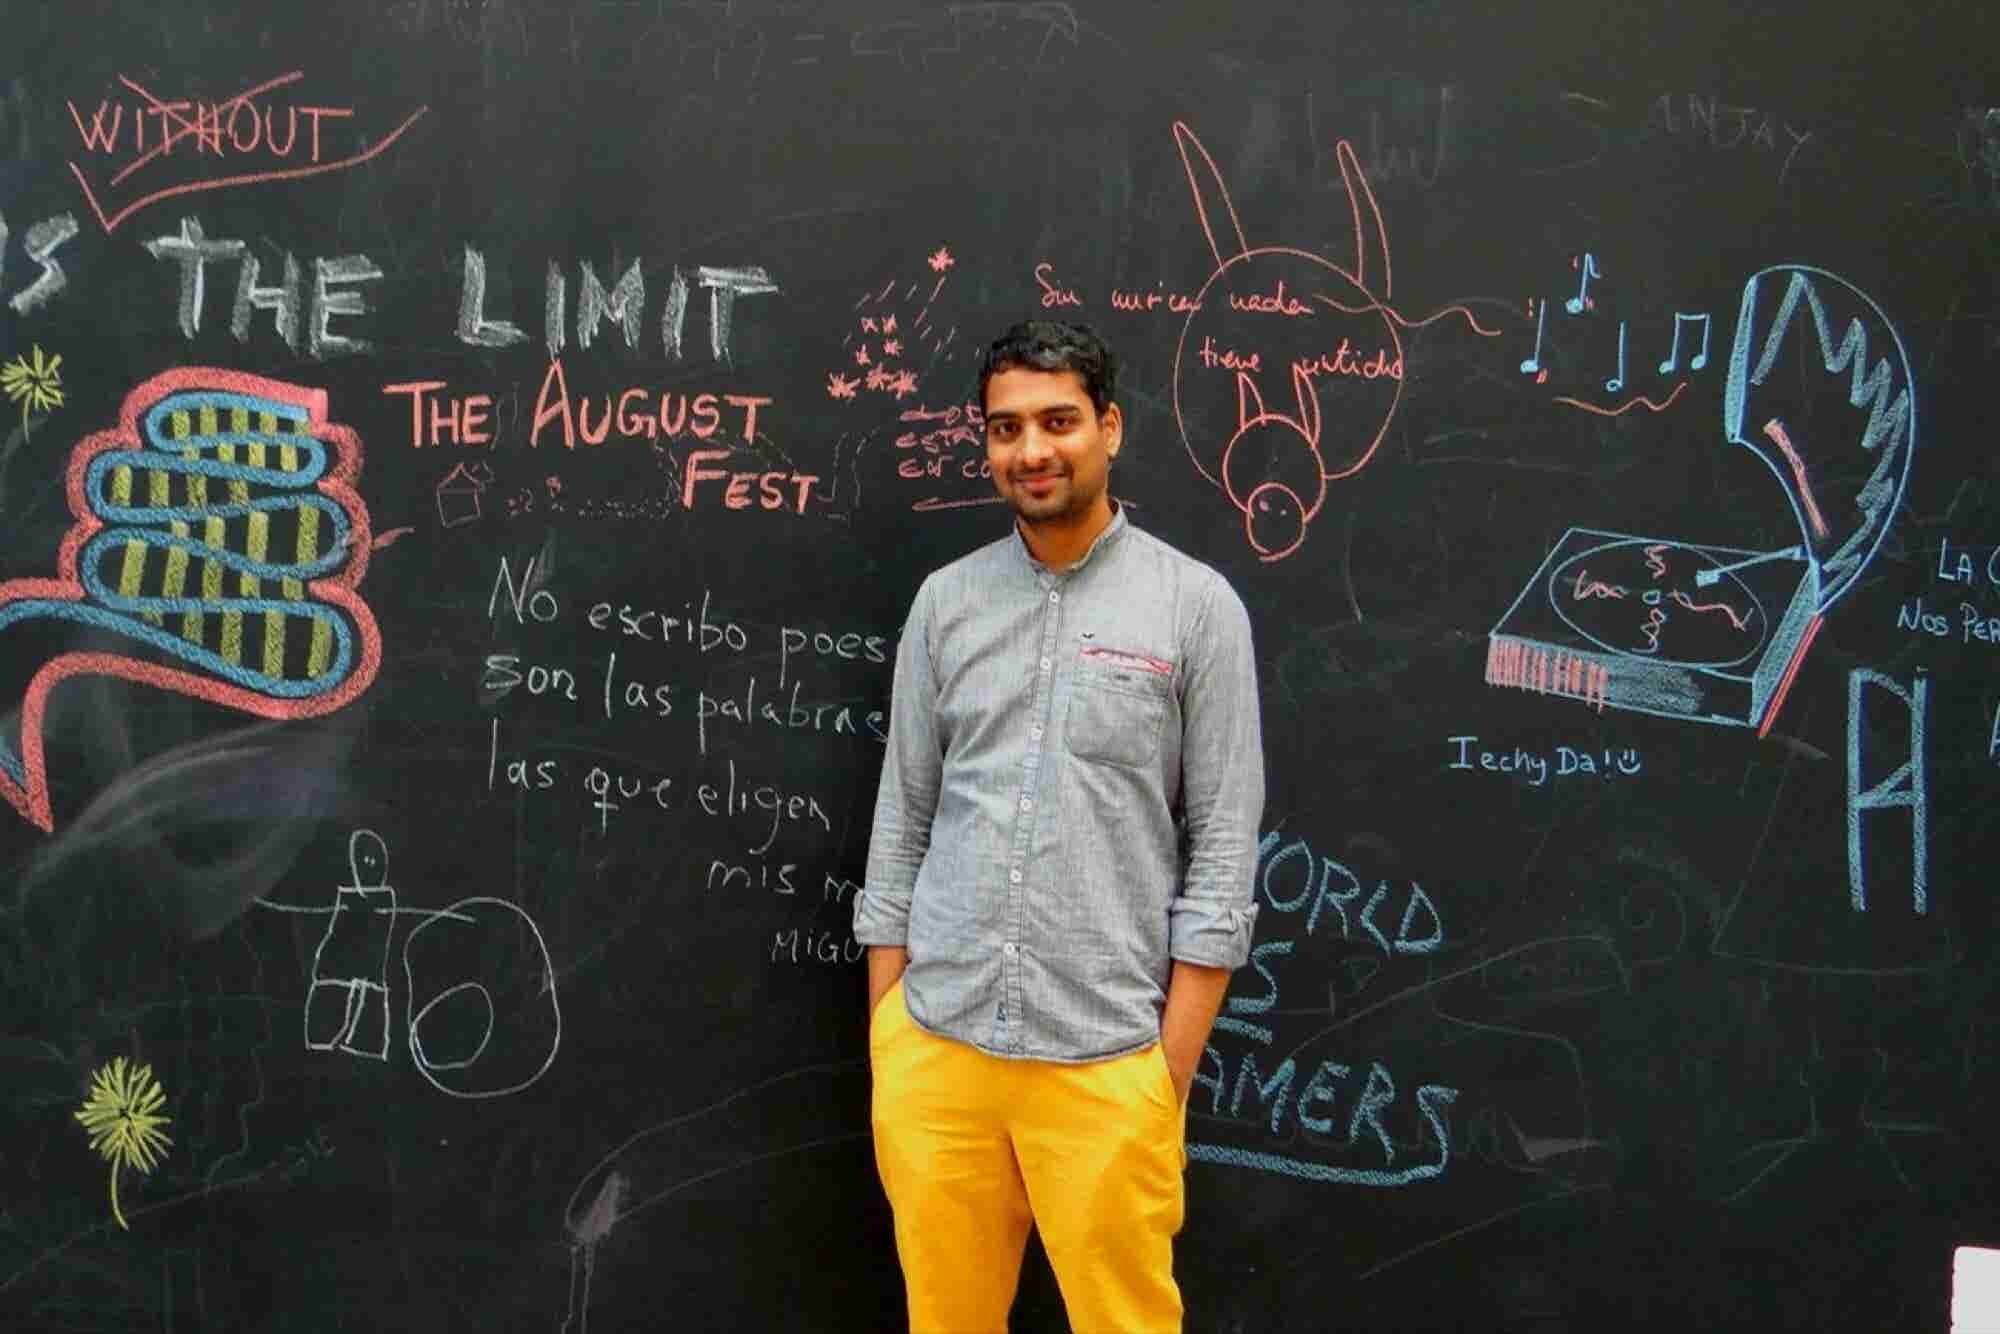 This Indian Entrepreneur Holds Events Globally From Belgium Through WhatsApp